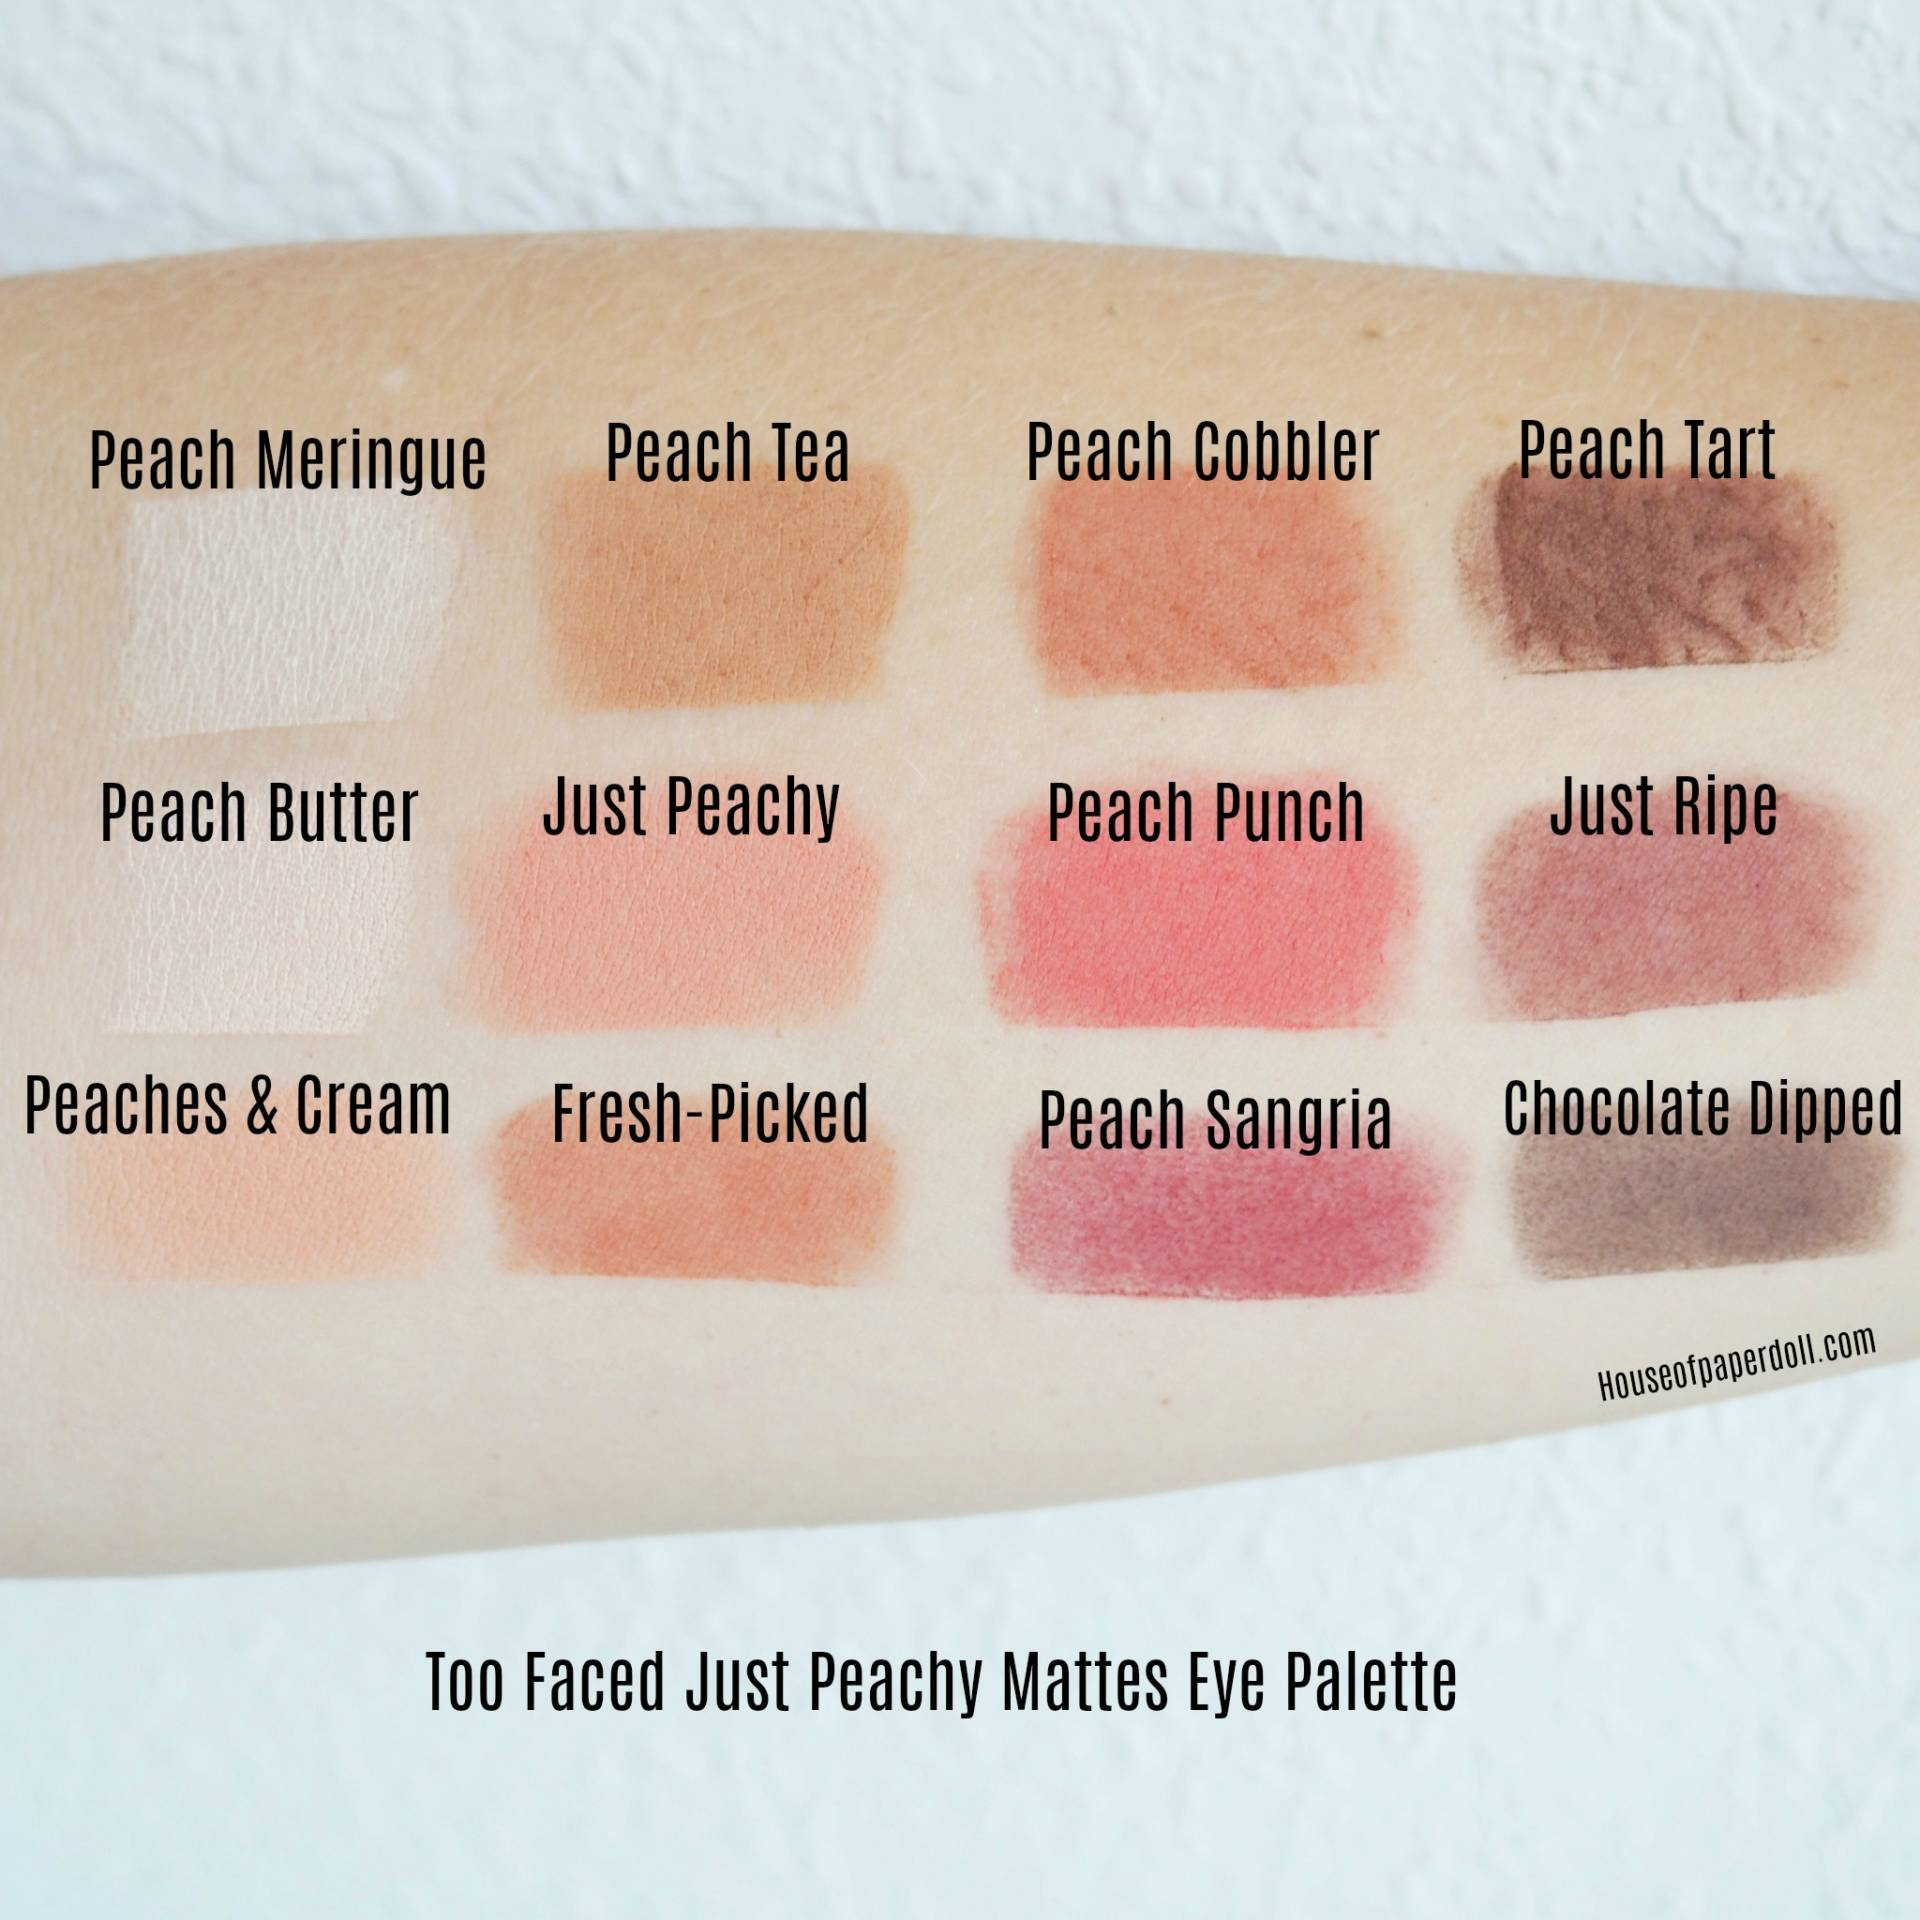 Too Faced Just Peachy Mattes Swatches